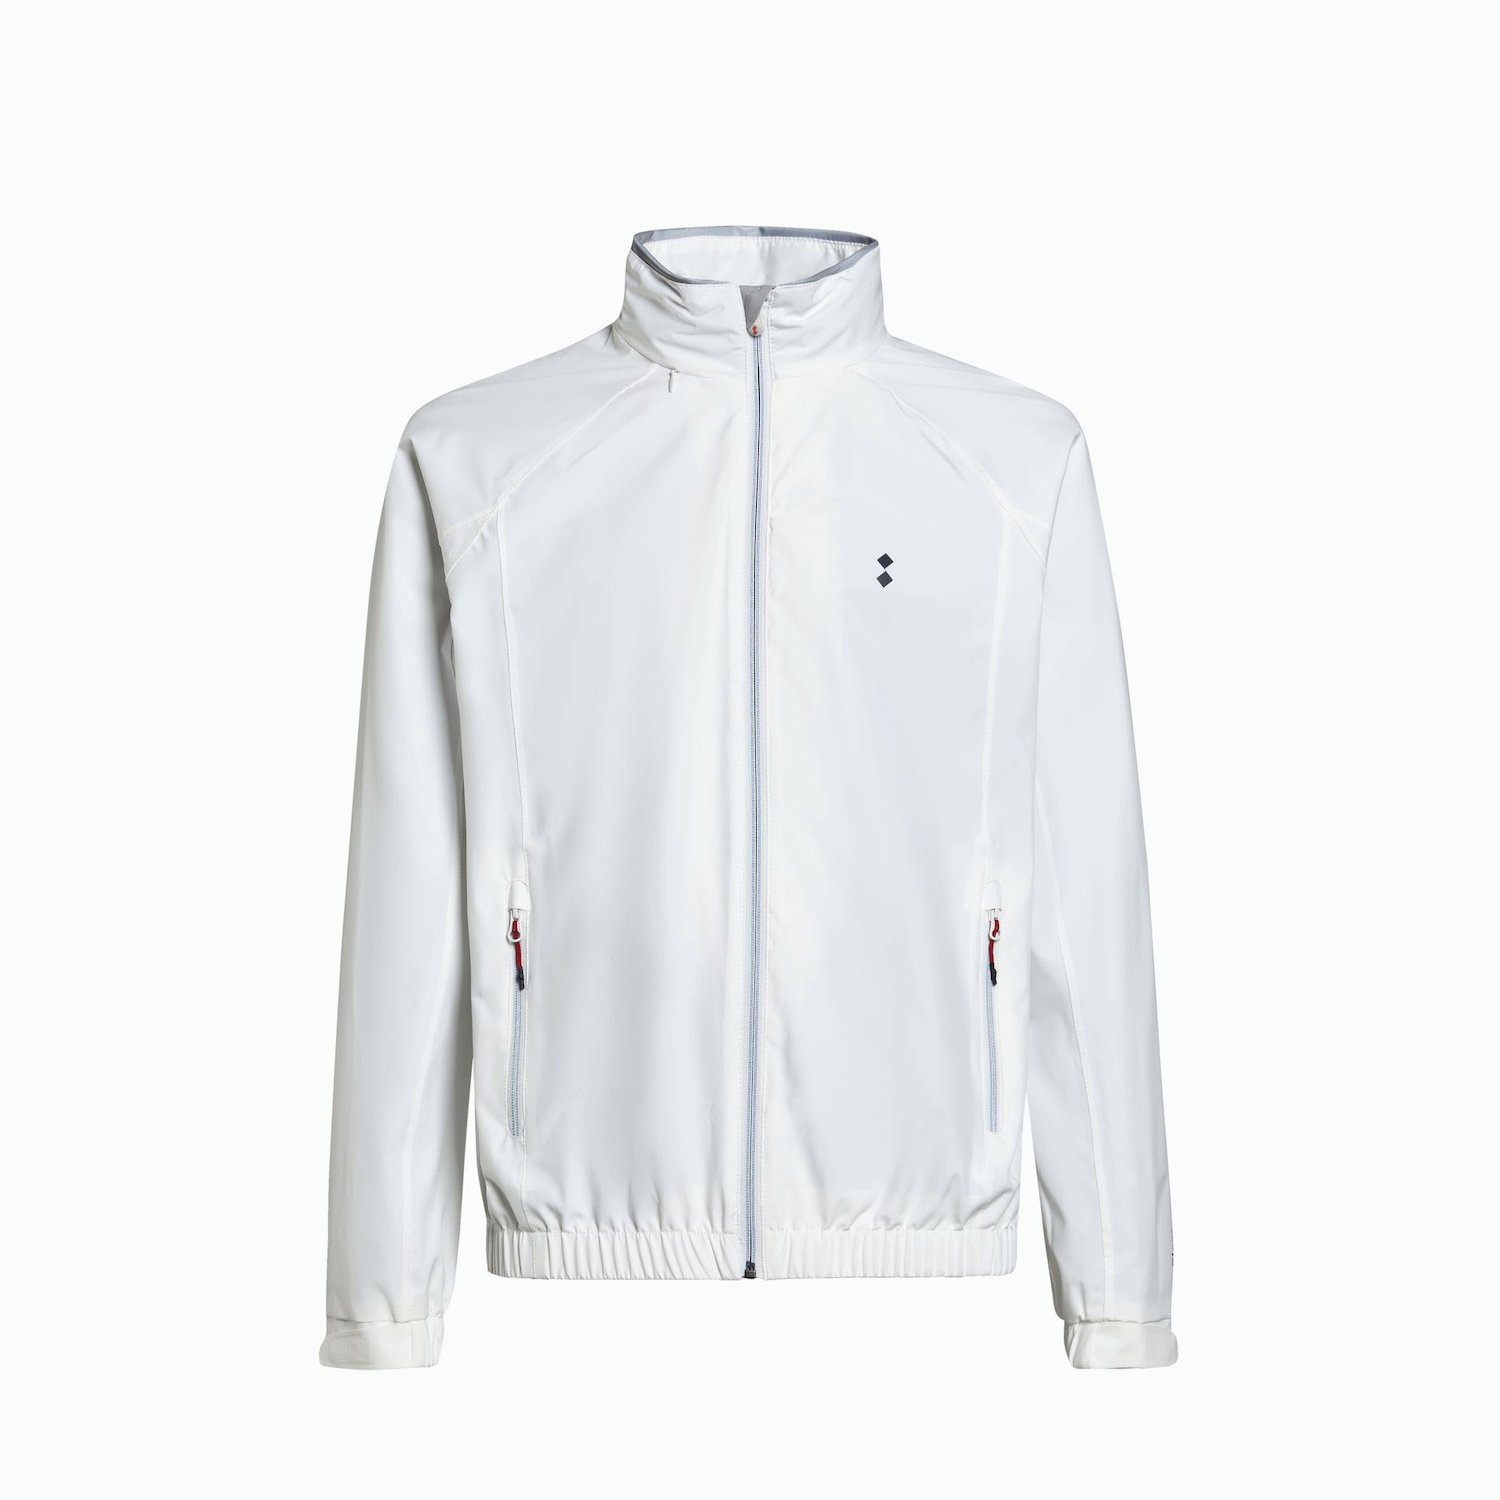 Siffert Jacket - Chalk